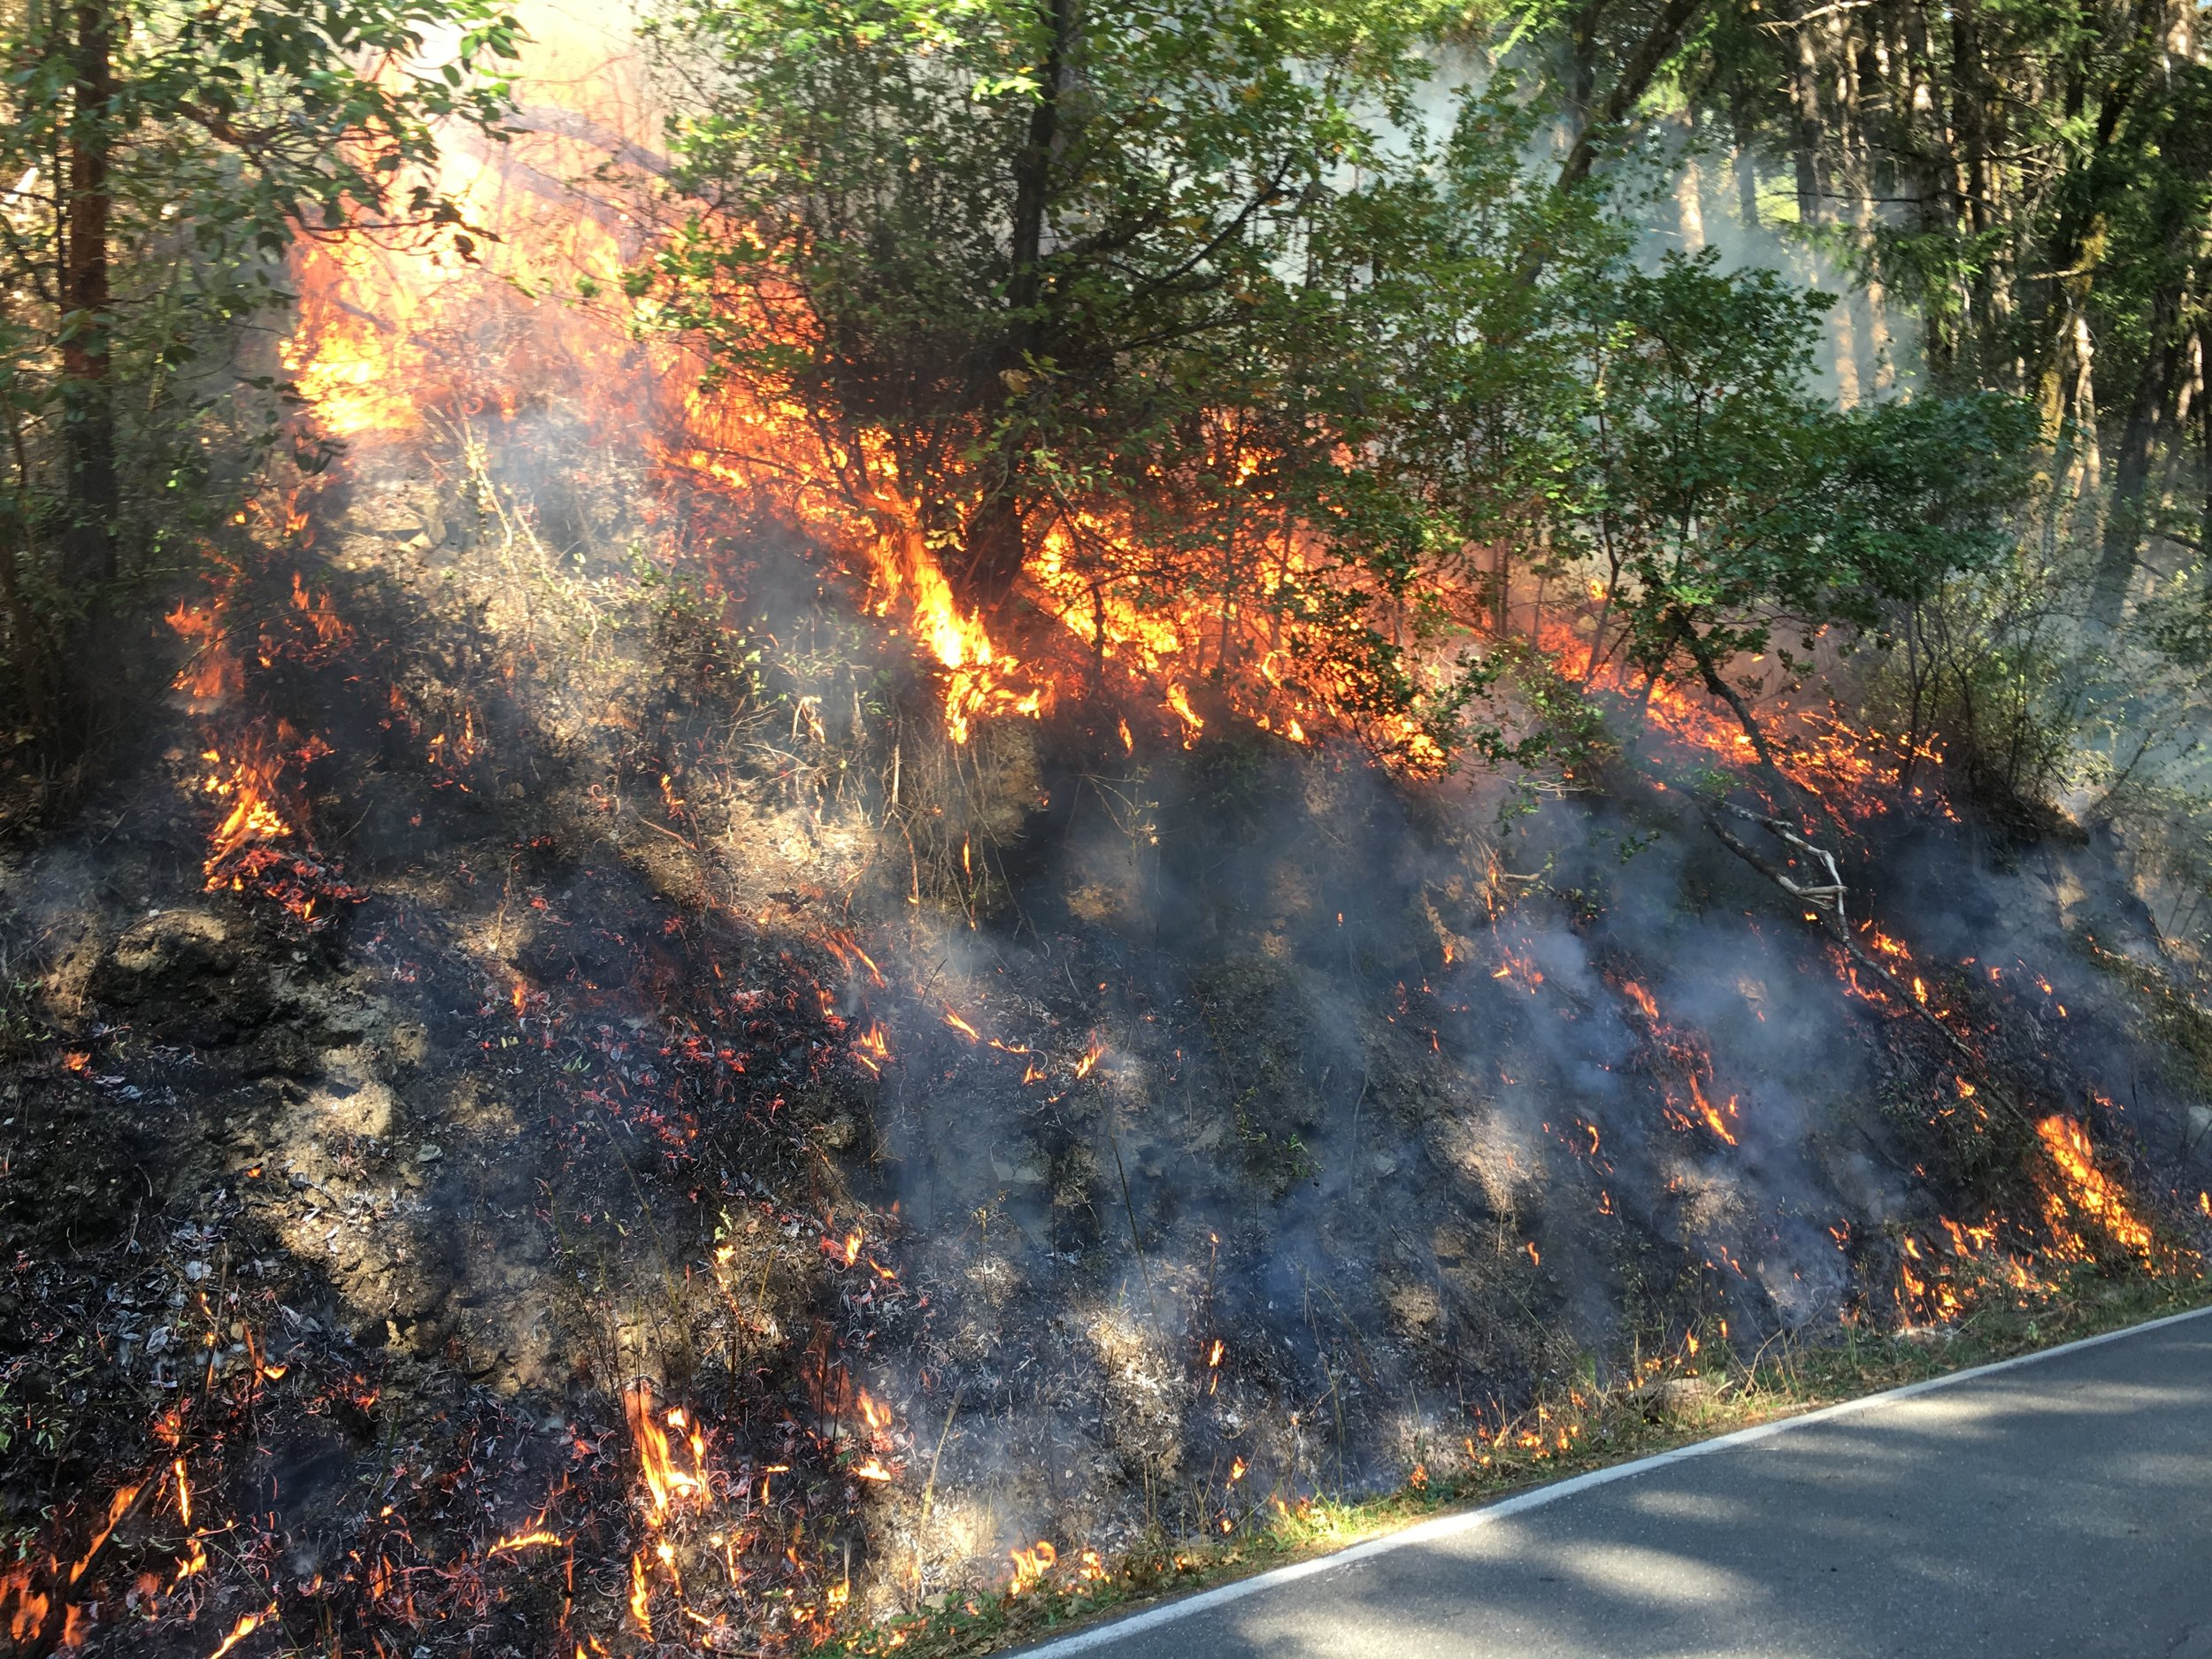 Fall 2017 Cal Fire Fuels Reduction Grant with TREX - Completing the State Response Area Fire Prevention Fund grant project, we combined efforts to treat an 86.5 acre portion of Yurok Ancestral Territory with prescribed fire.The burn reduced fuels across the high-risk area between homes and Highway 169, and helped stimulate growth of cultural resources while training local and visiting fire workers.See the full News Release HERE